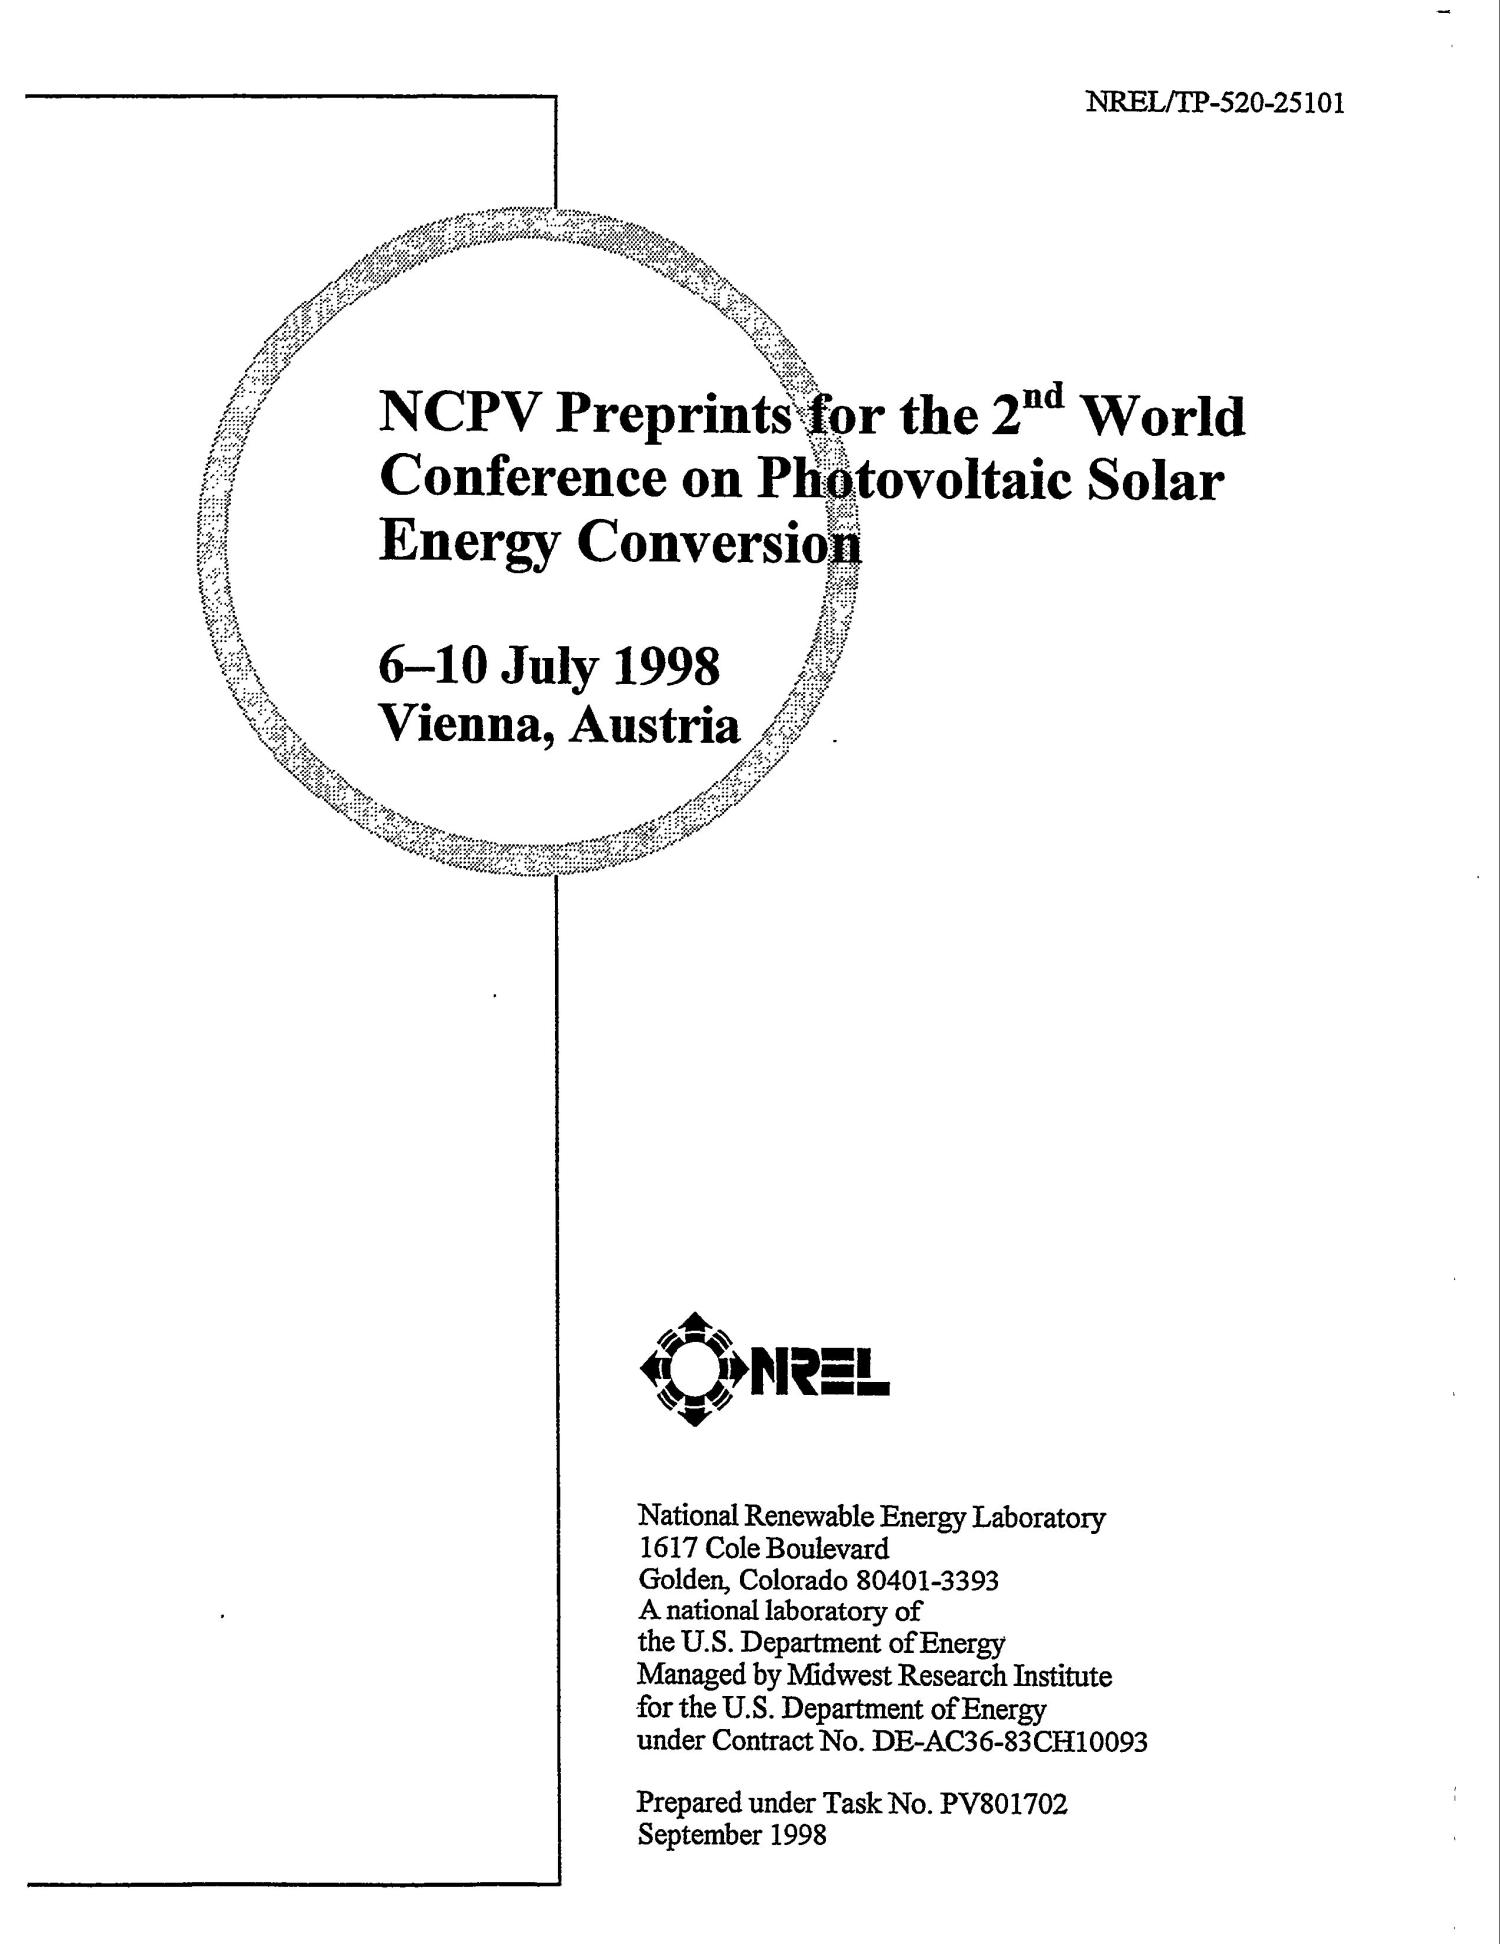 NCPV preprints for the 2. world conference on photovoltaic solar energy conversion                                                                                                      [Sequence #]: 2 of 144